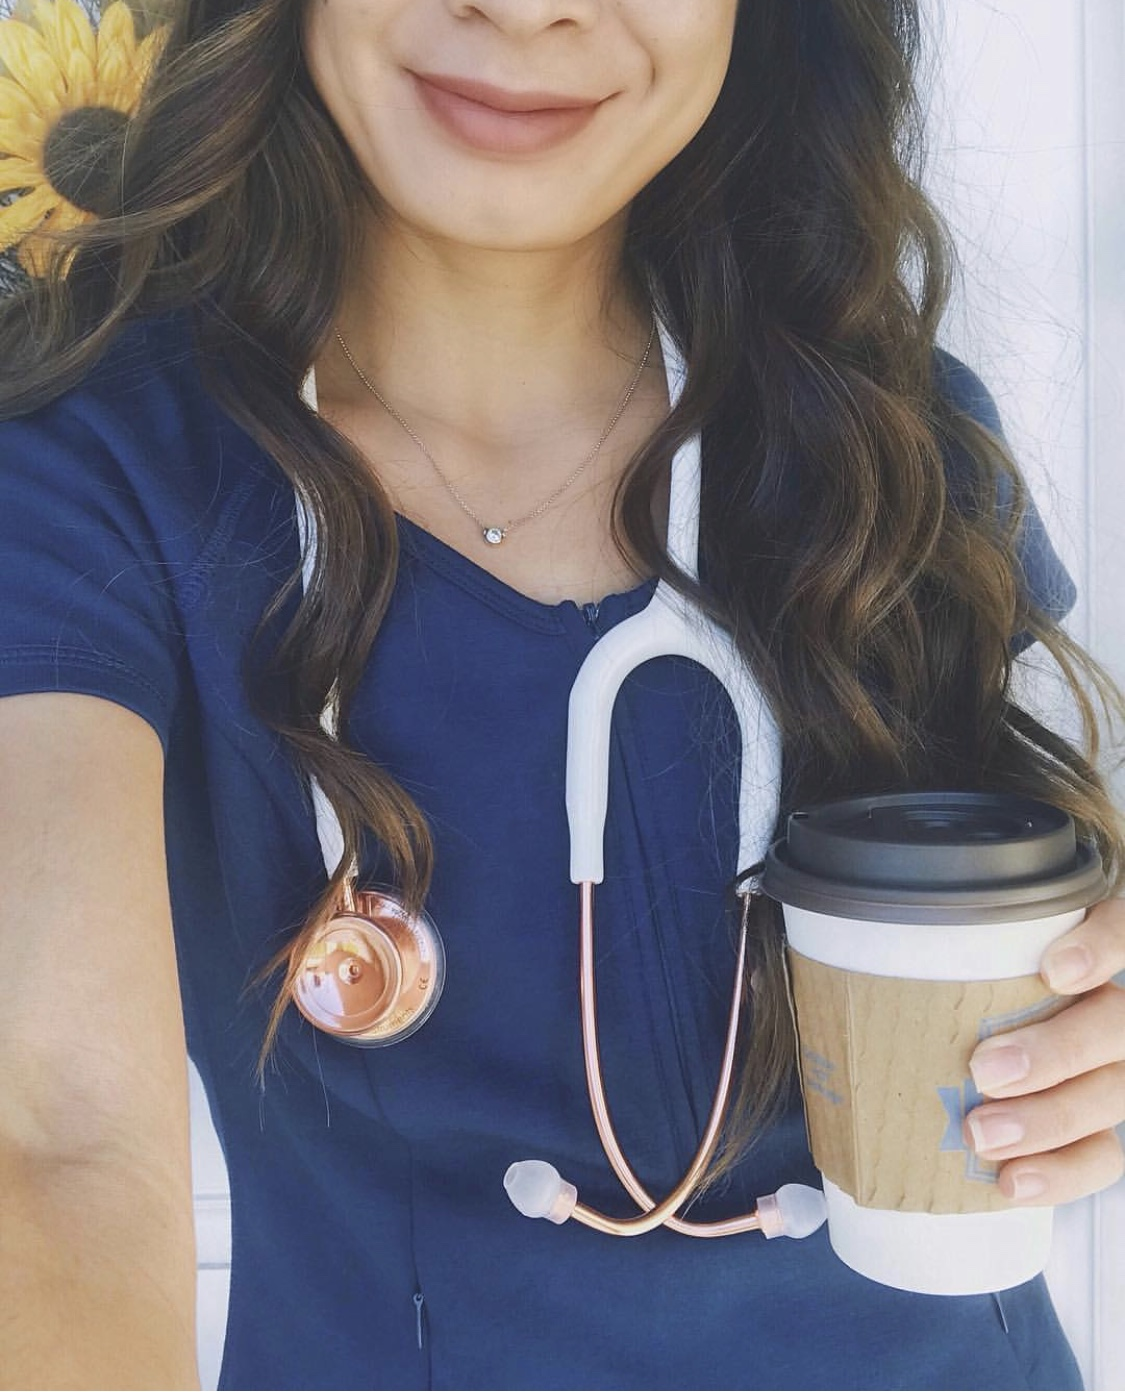 5 things I Wish I Knew Before Starting Medical School